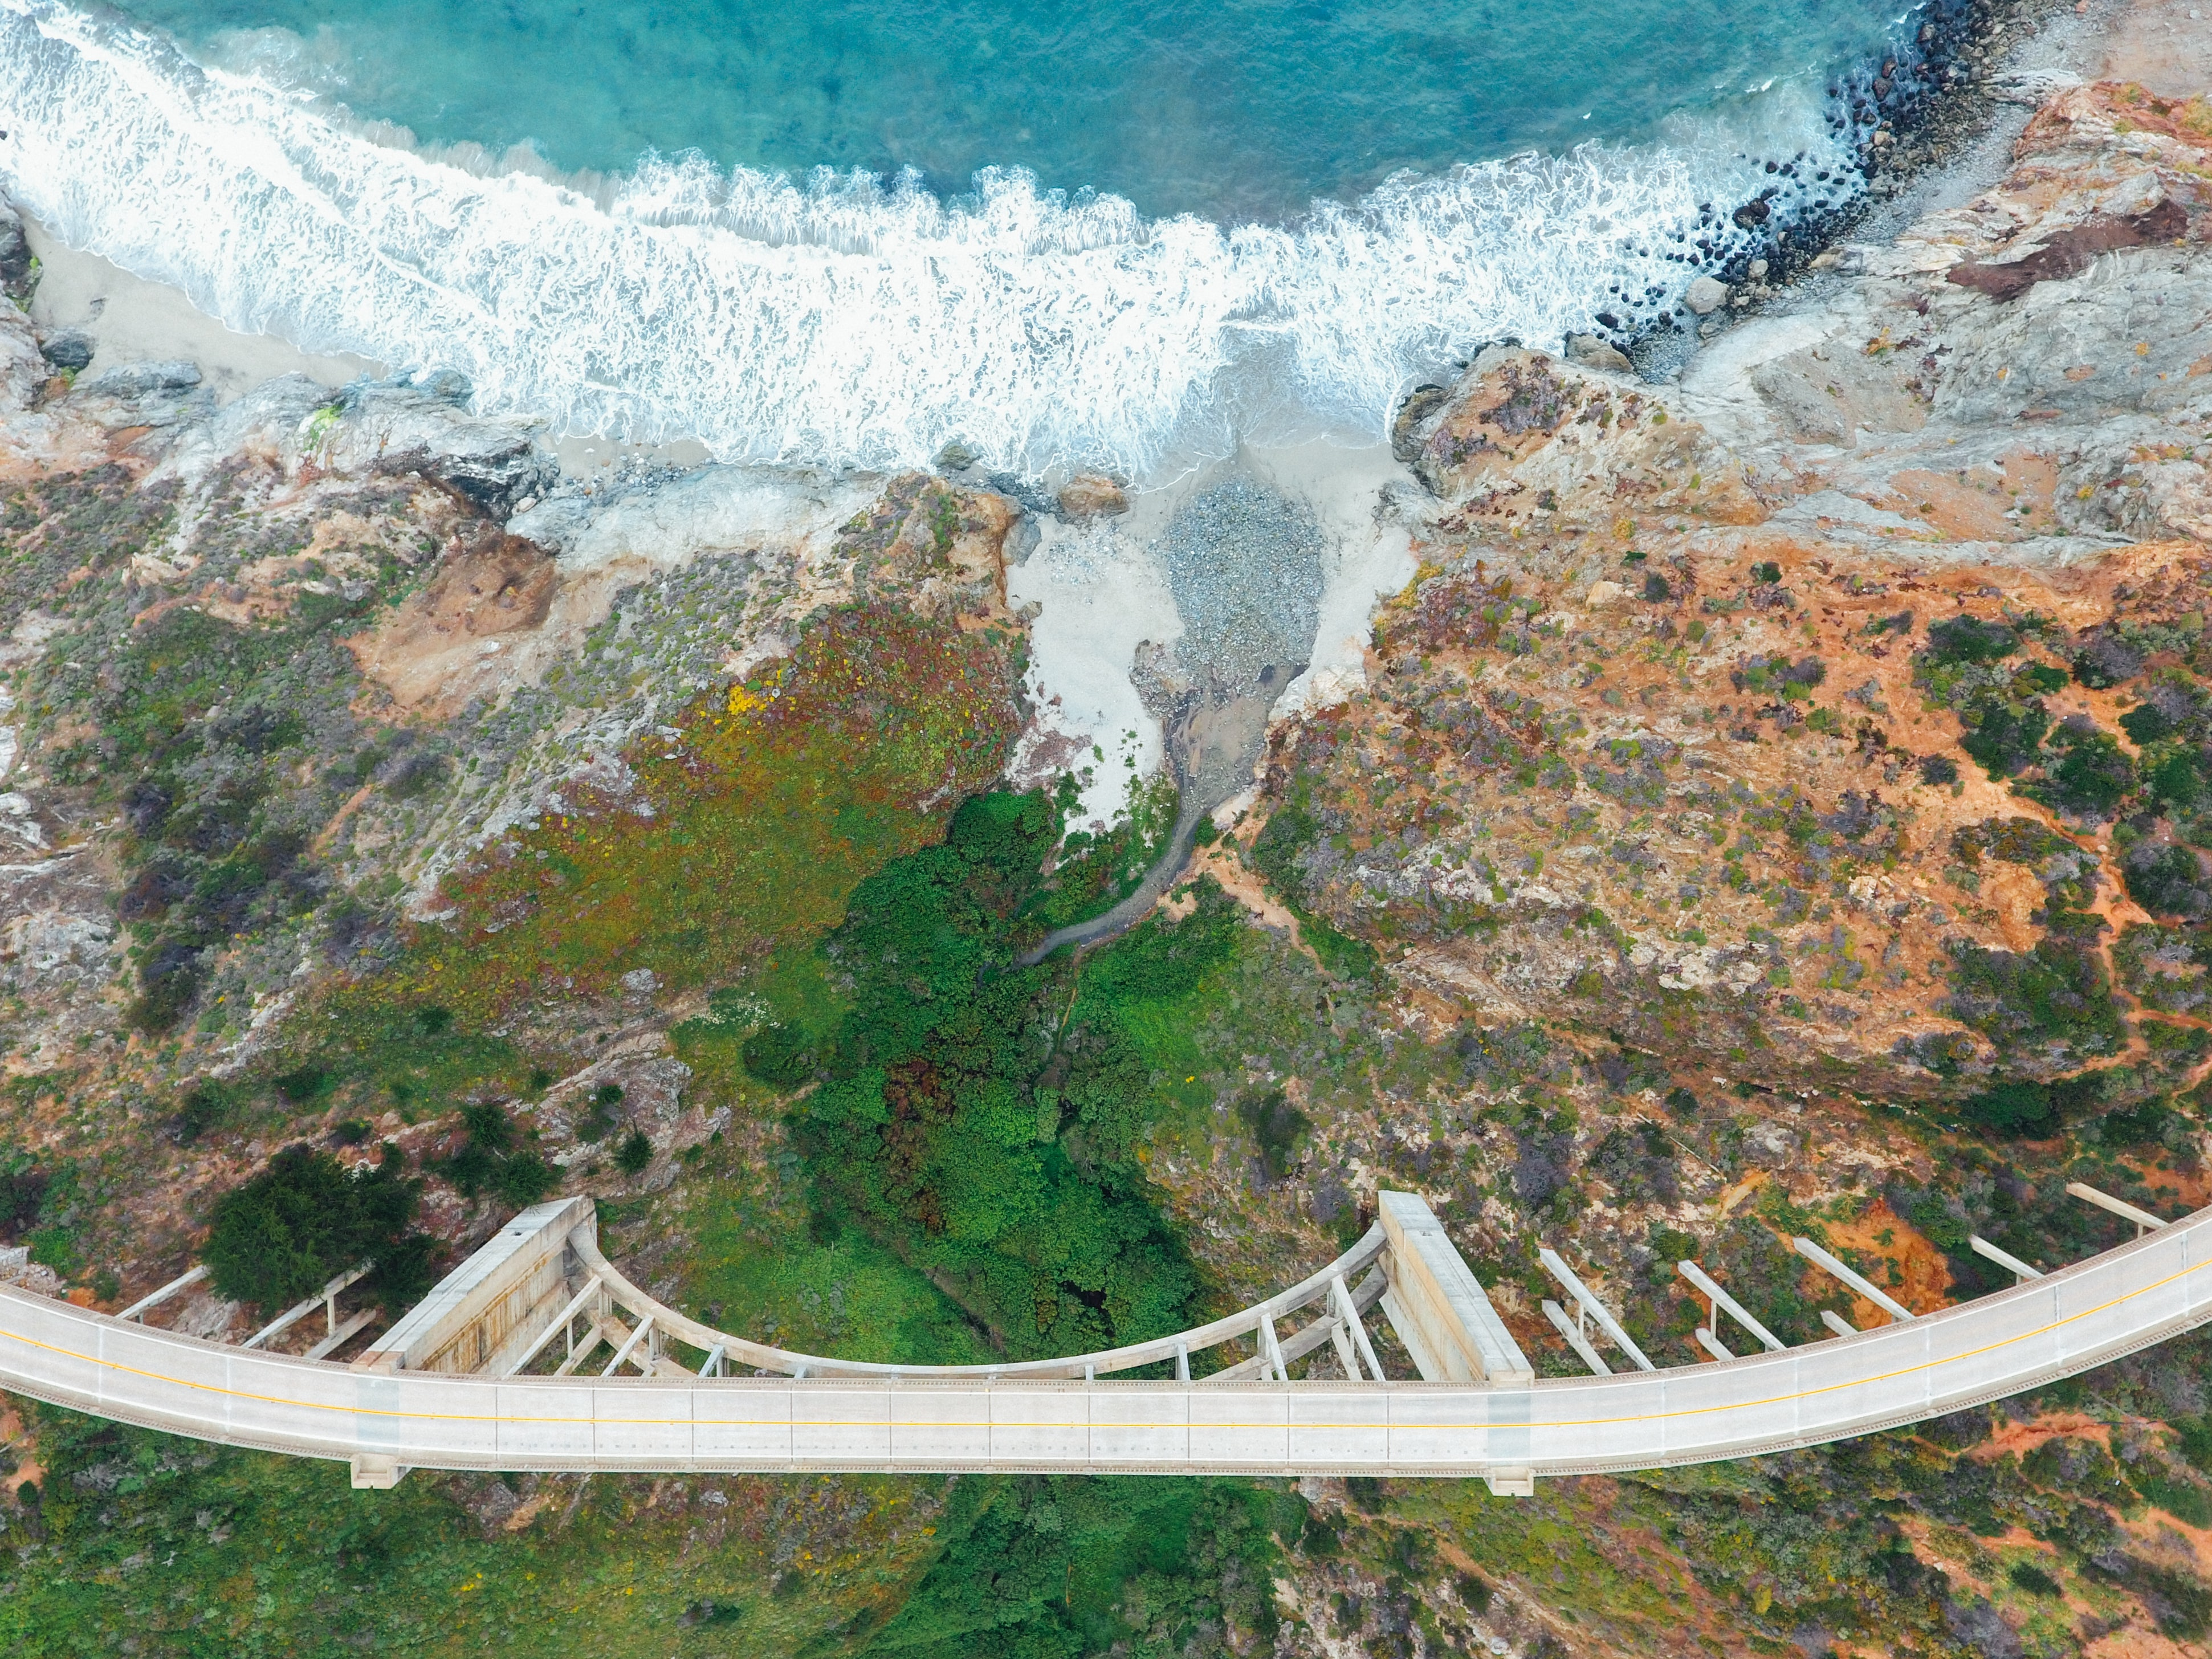 aerial photography of bridge above forest and body of water